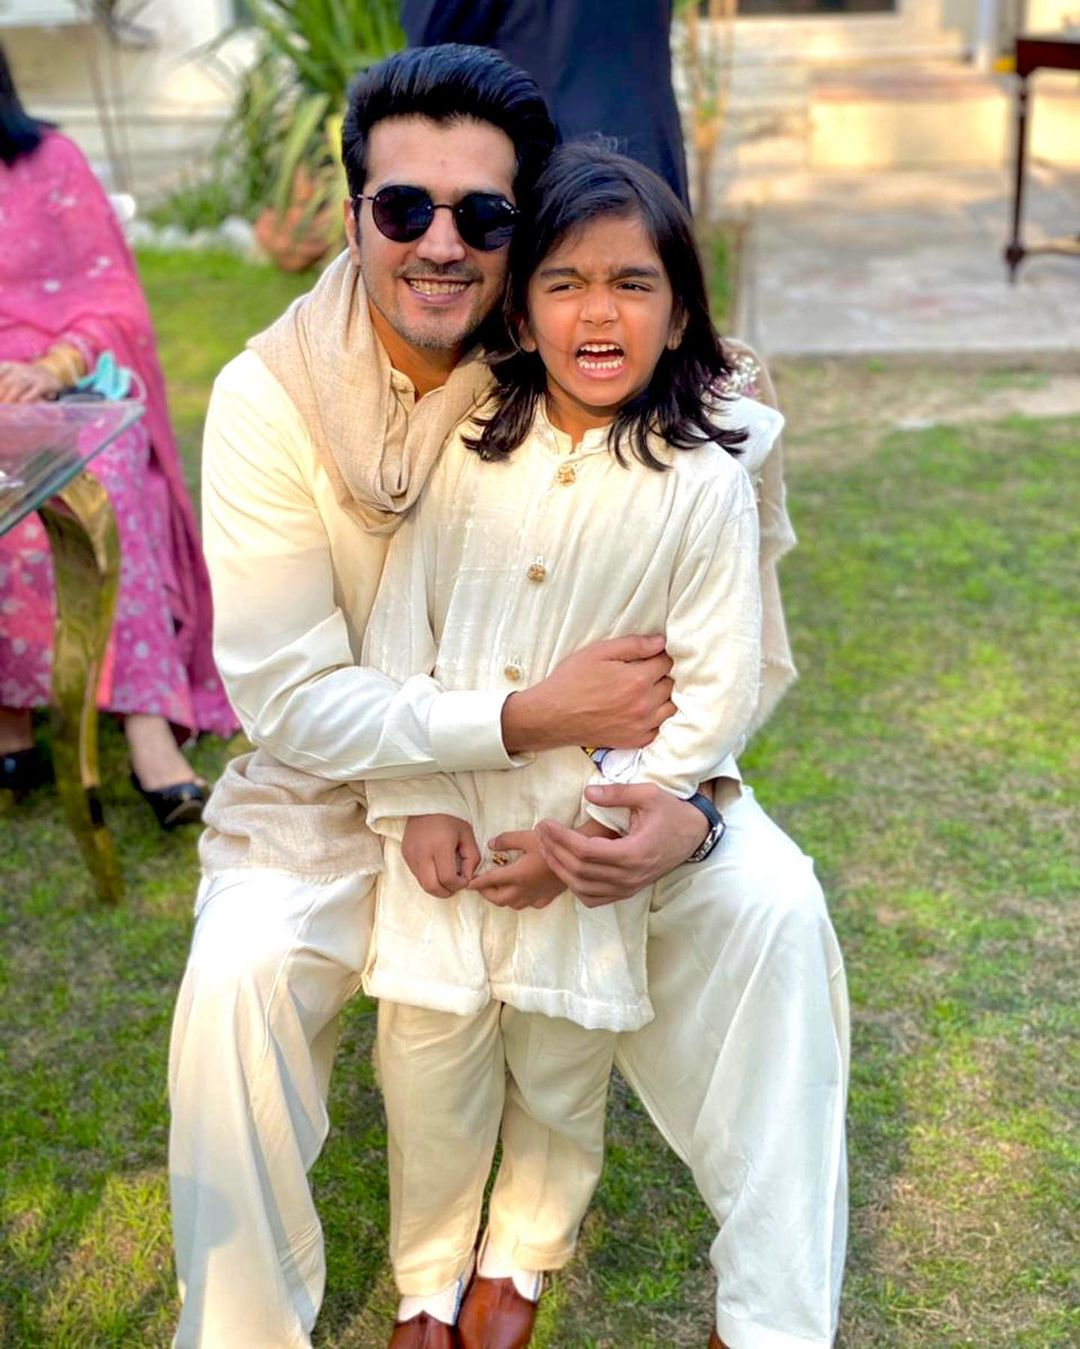 Actor Shahzad Sheikh with his Wife and Kids at a Recent Wedding